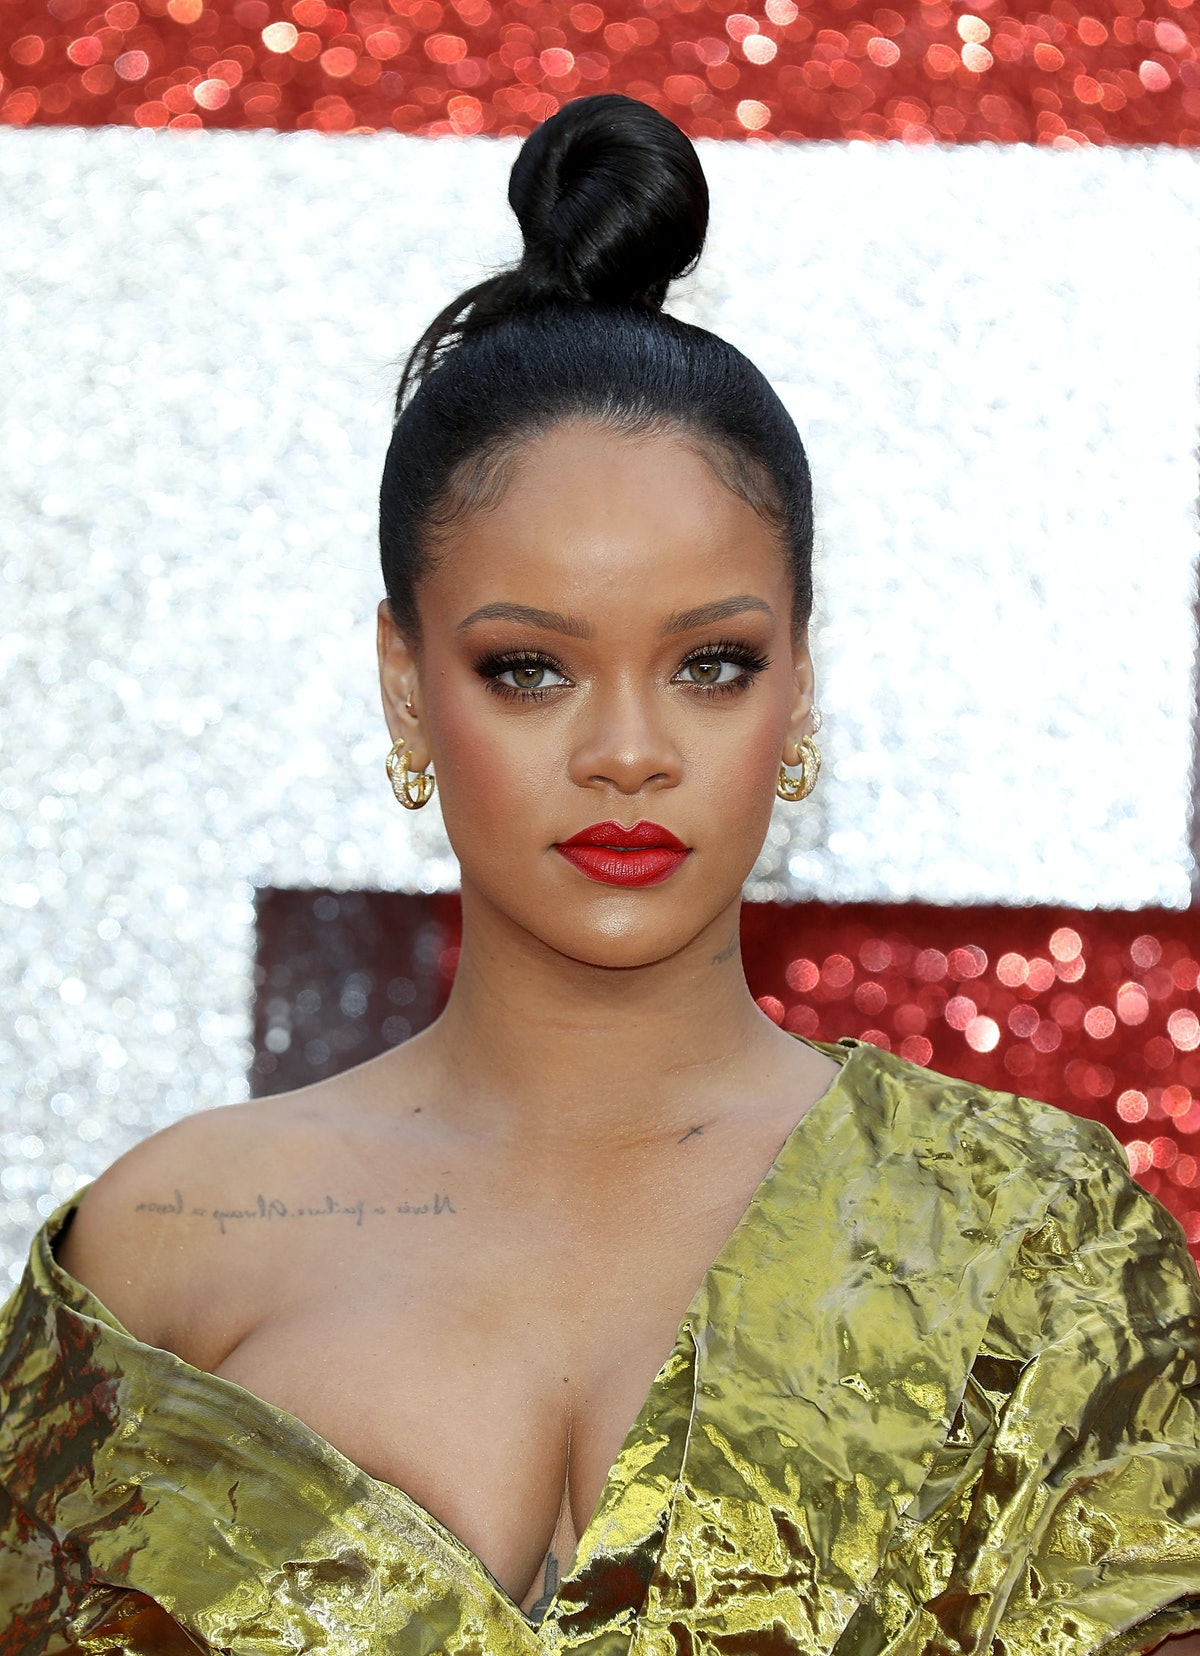 When Will Rihanna & Hassan Jameel Get Engaged? Her IG Like Has Fans Thinking It'll Be Soon